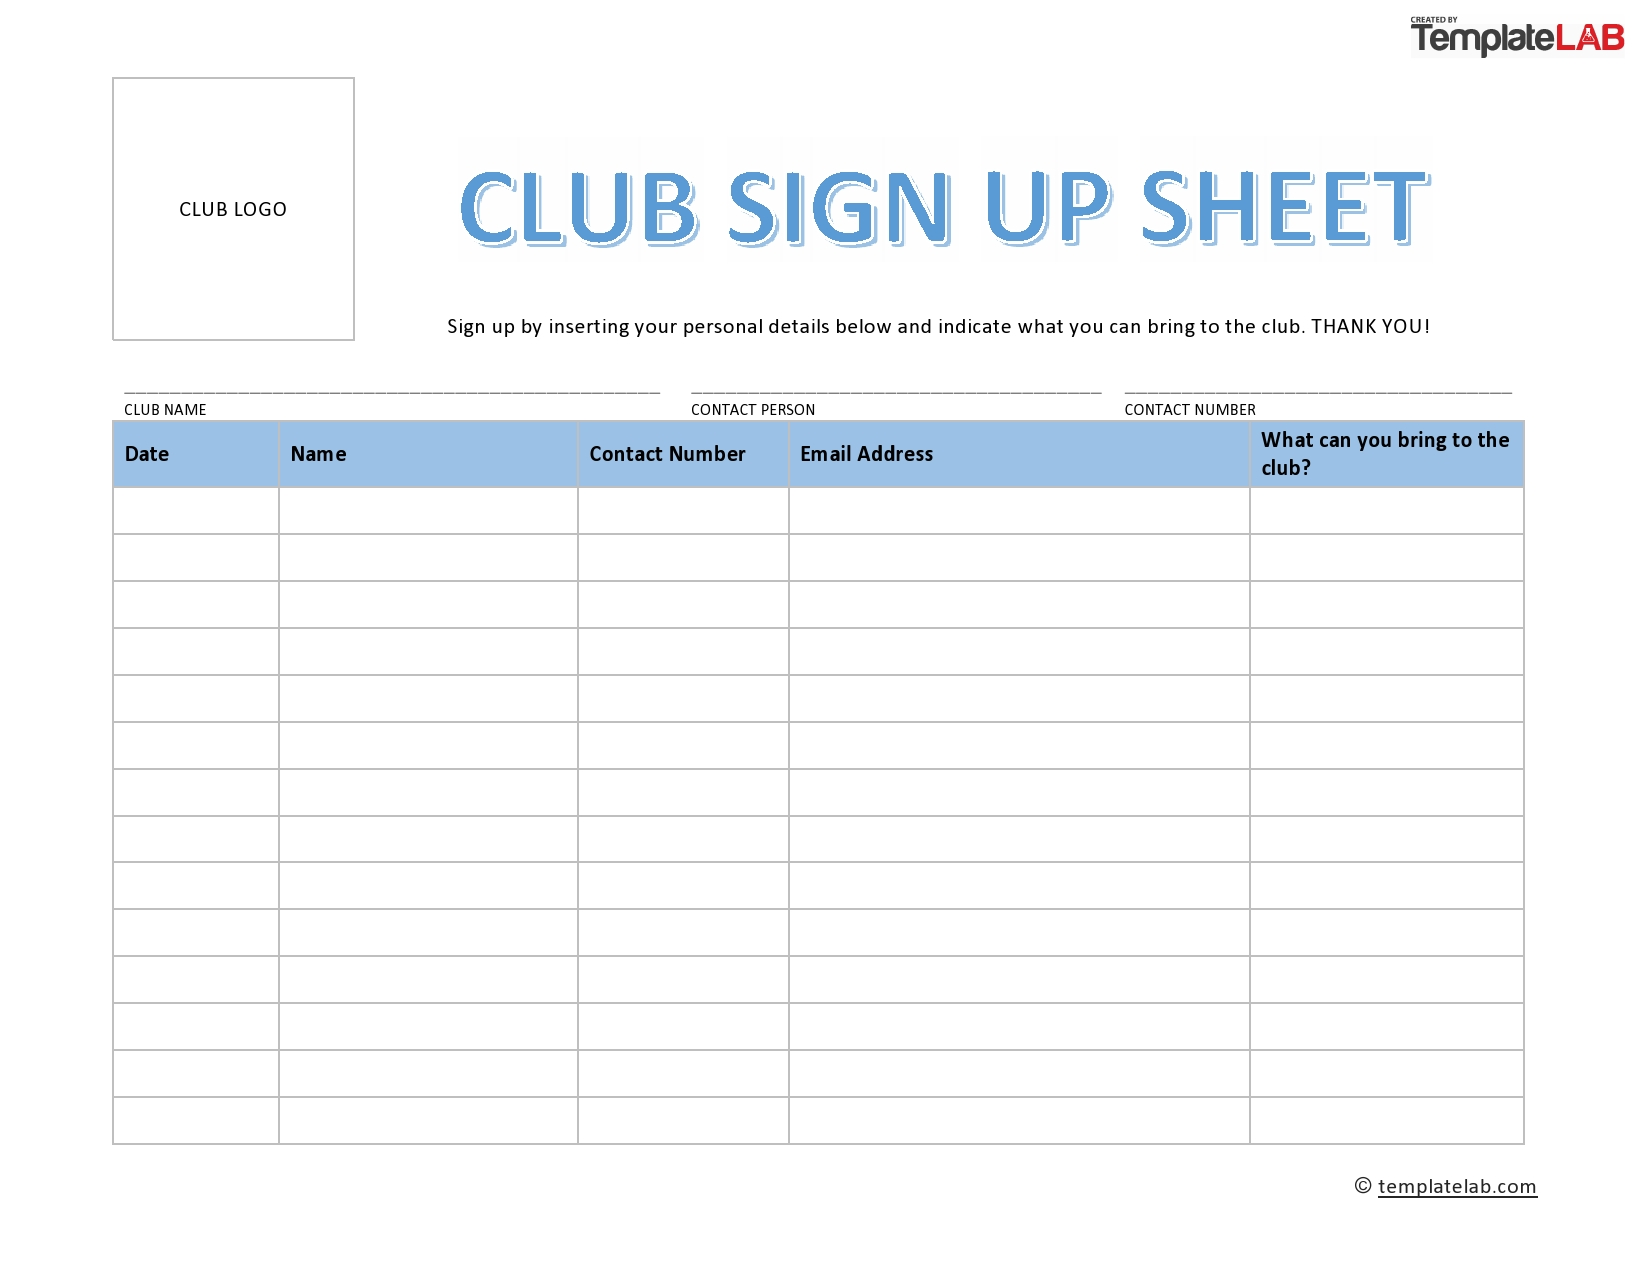 Why Should I Create A Sign Up Sheet